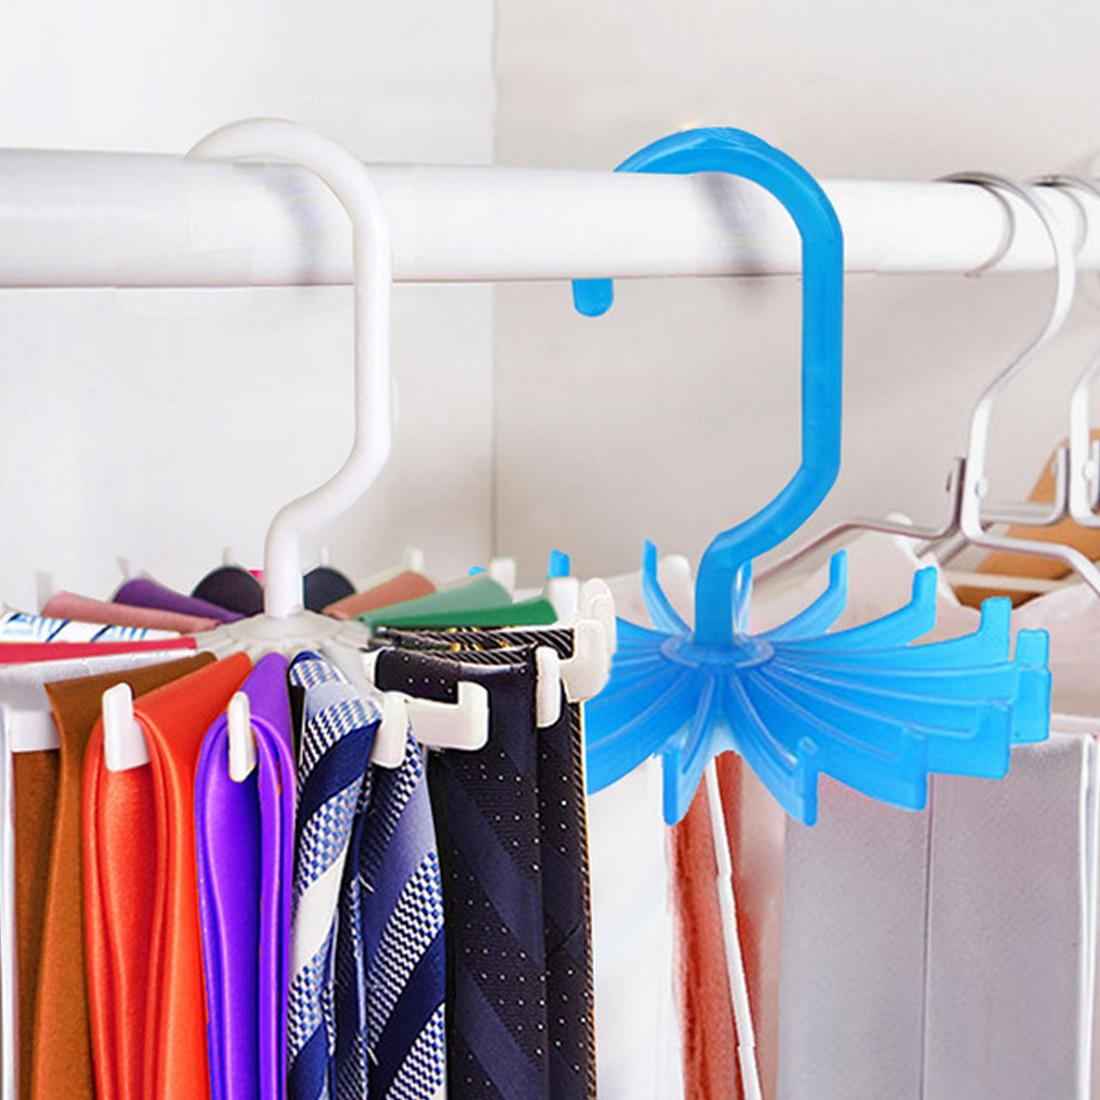 New sale Business Rotating 20 Hooks Belt Neck Tie Holder Rack Hanger Organizer Space Saving tools